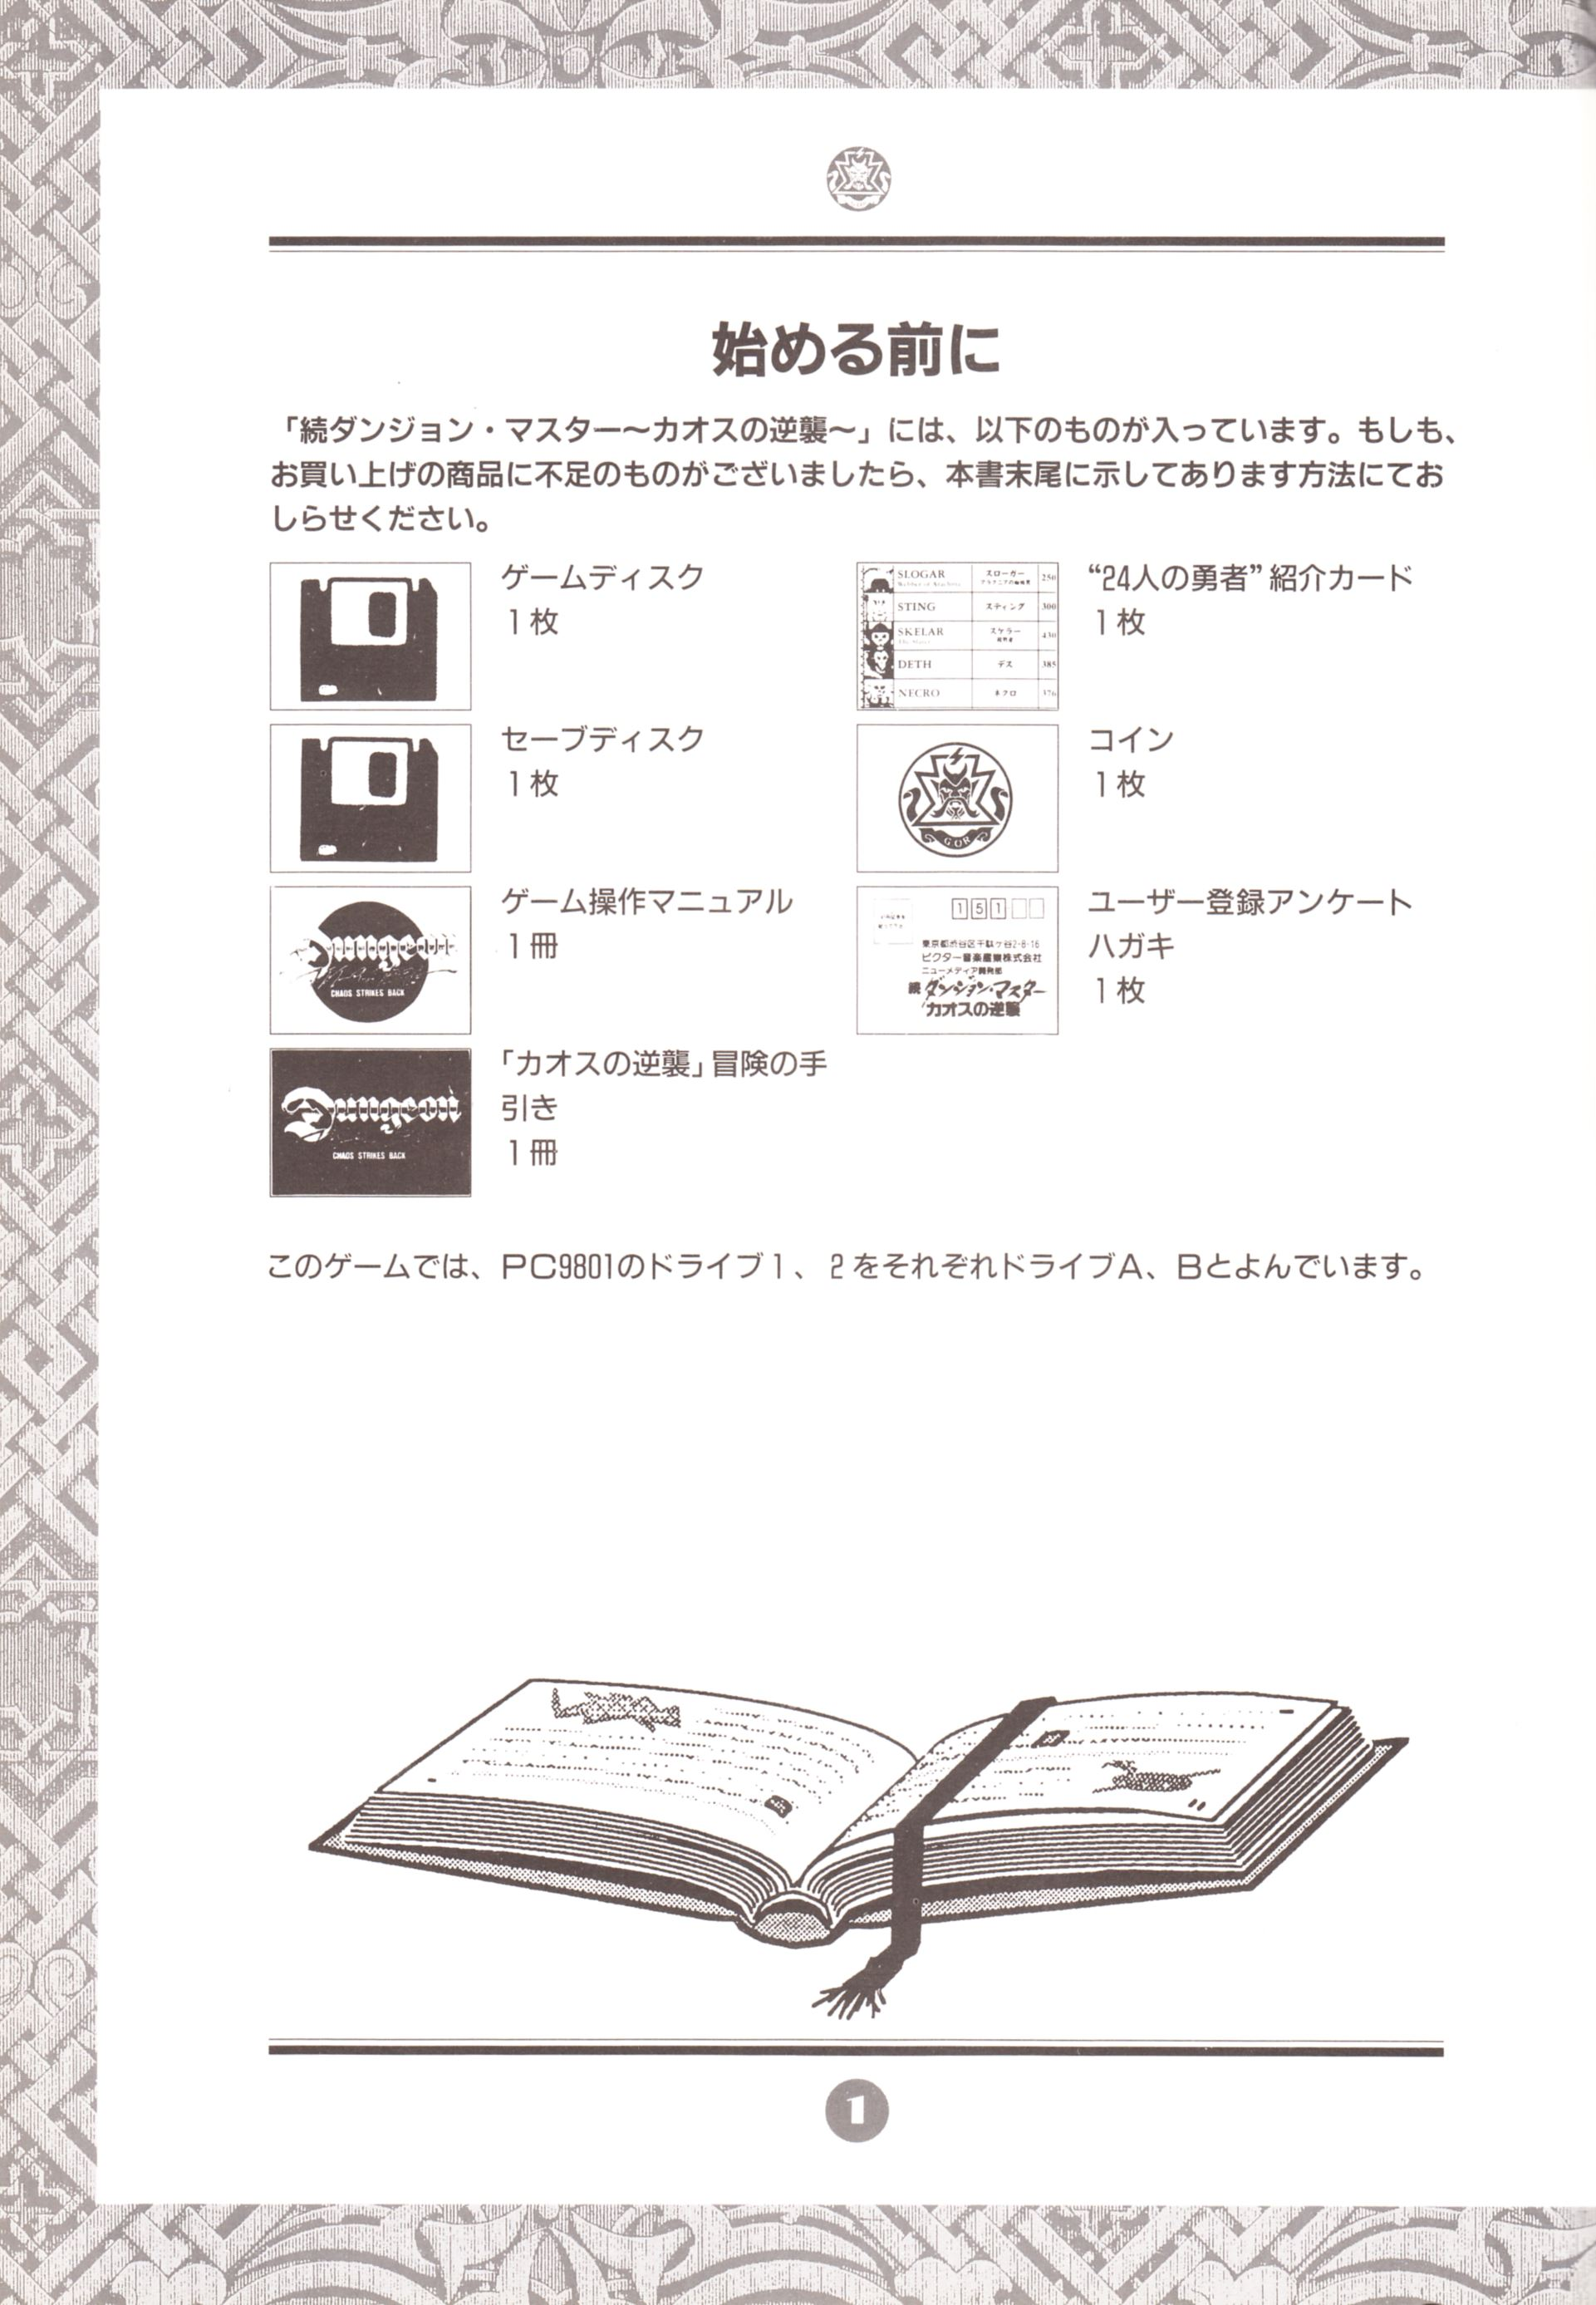 Game - Chaos Strikes Back - JP - PC-9801 - 3-5-inch - An Operation Manual - Page 004 - Scan